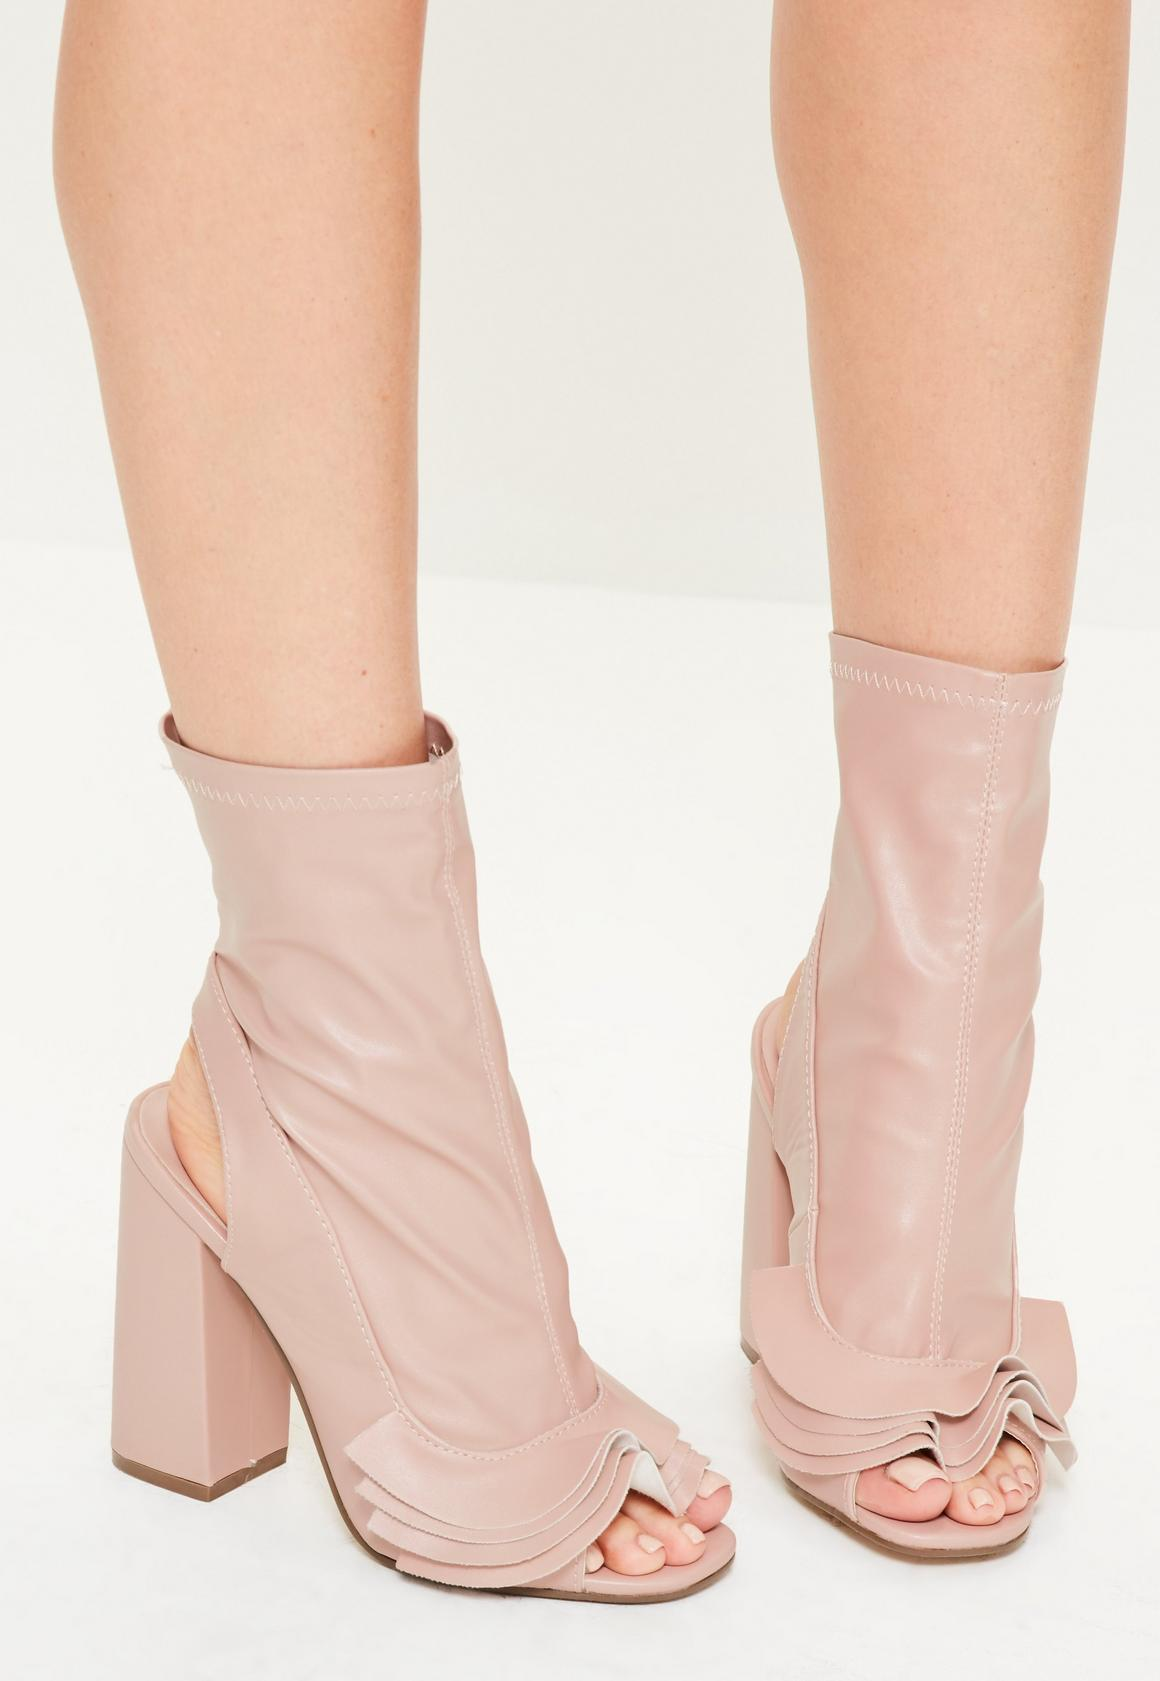 Pink Ruffle Trim Peep Toe Heeled Boots | Missguided